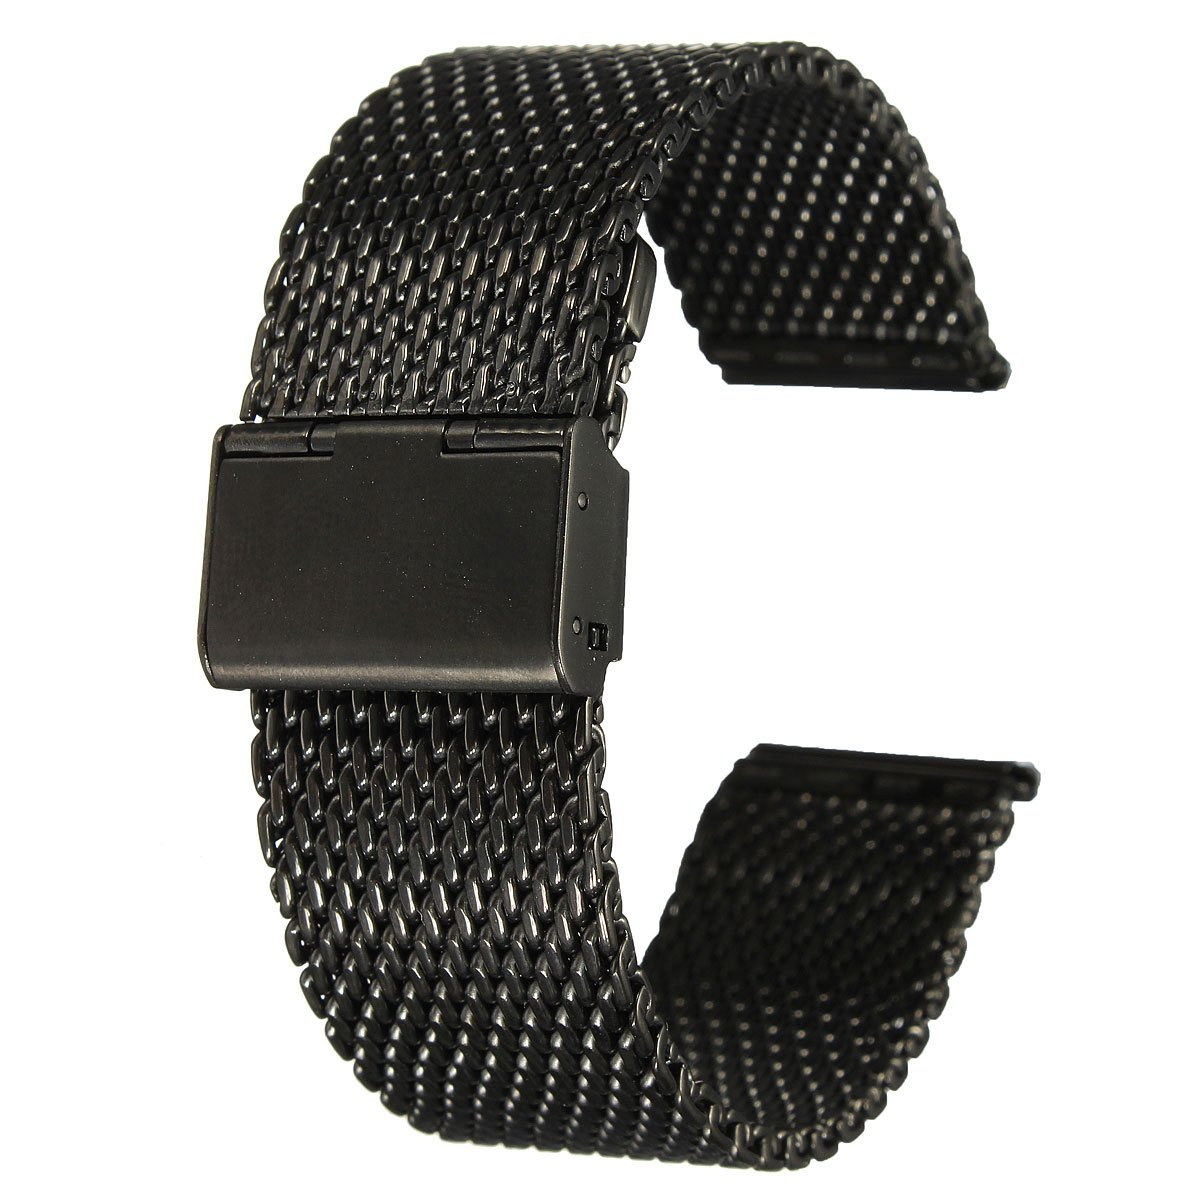 YCYC!5*22mm Unisex Stainless Steel Chainmail Watch Strap Band New Year Gift black